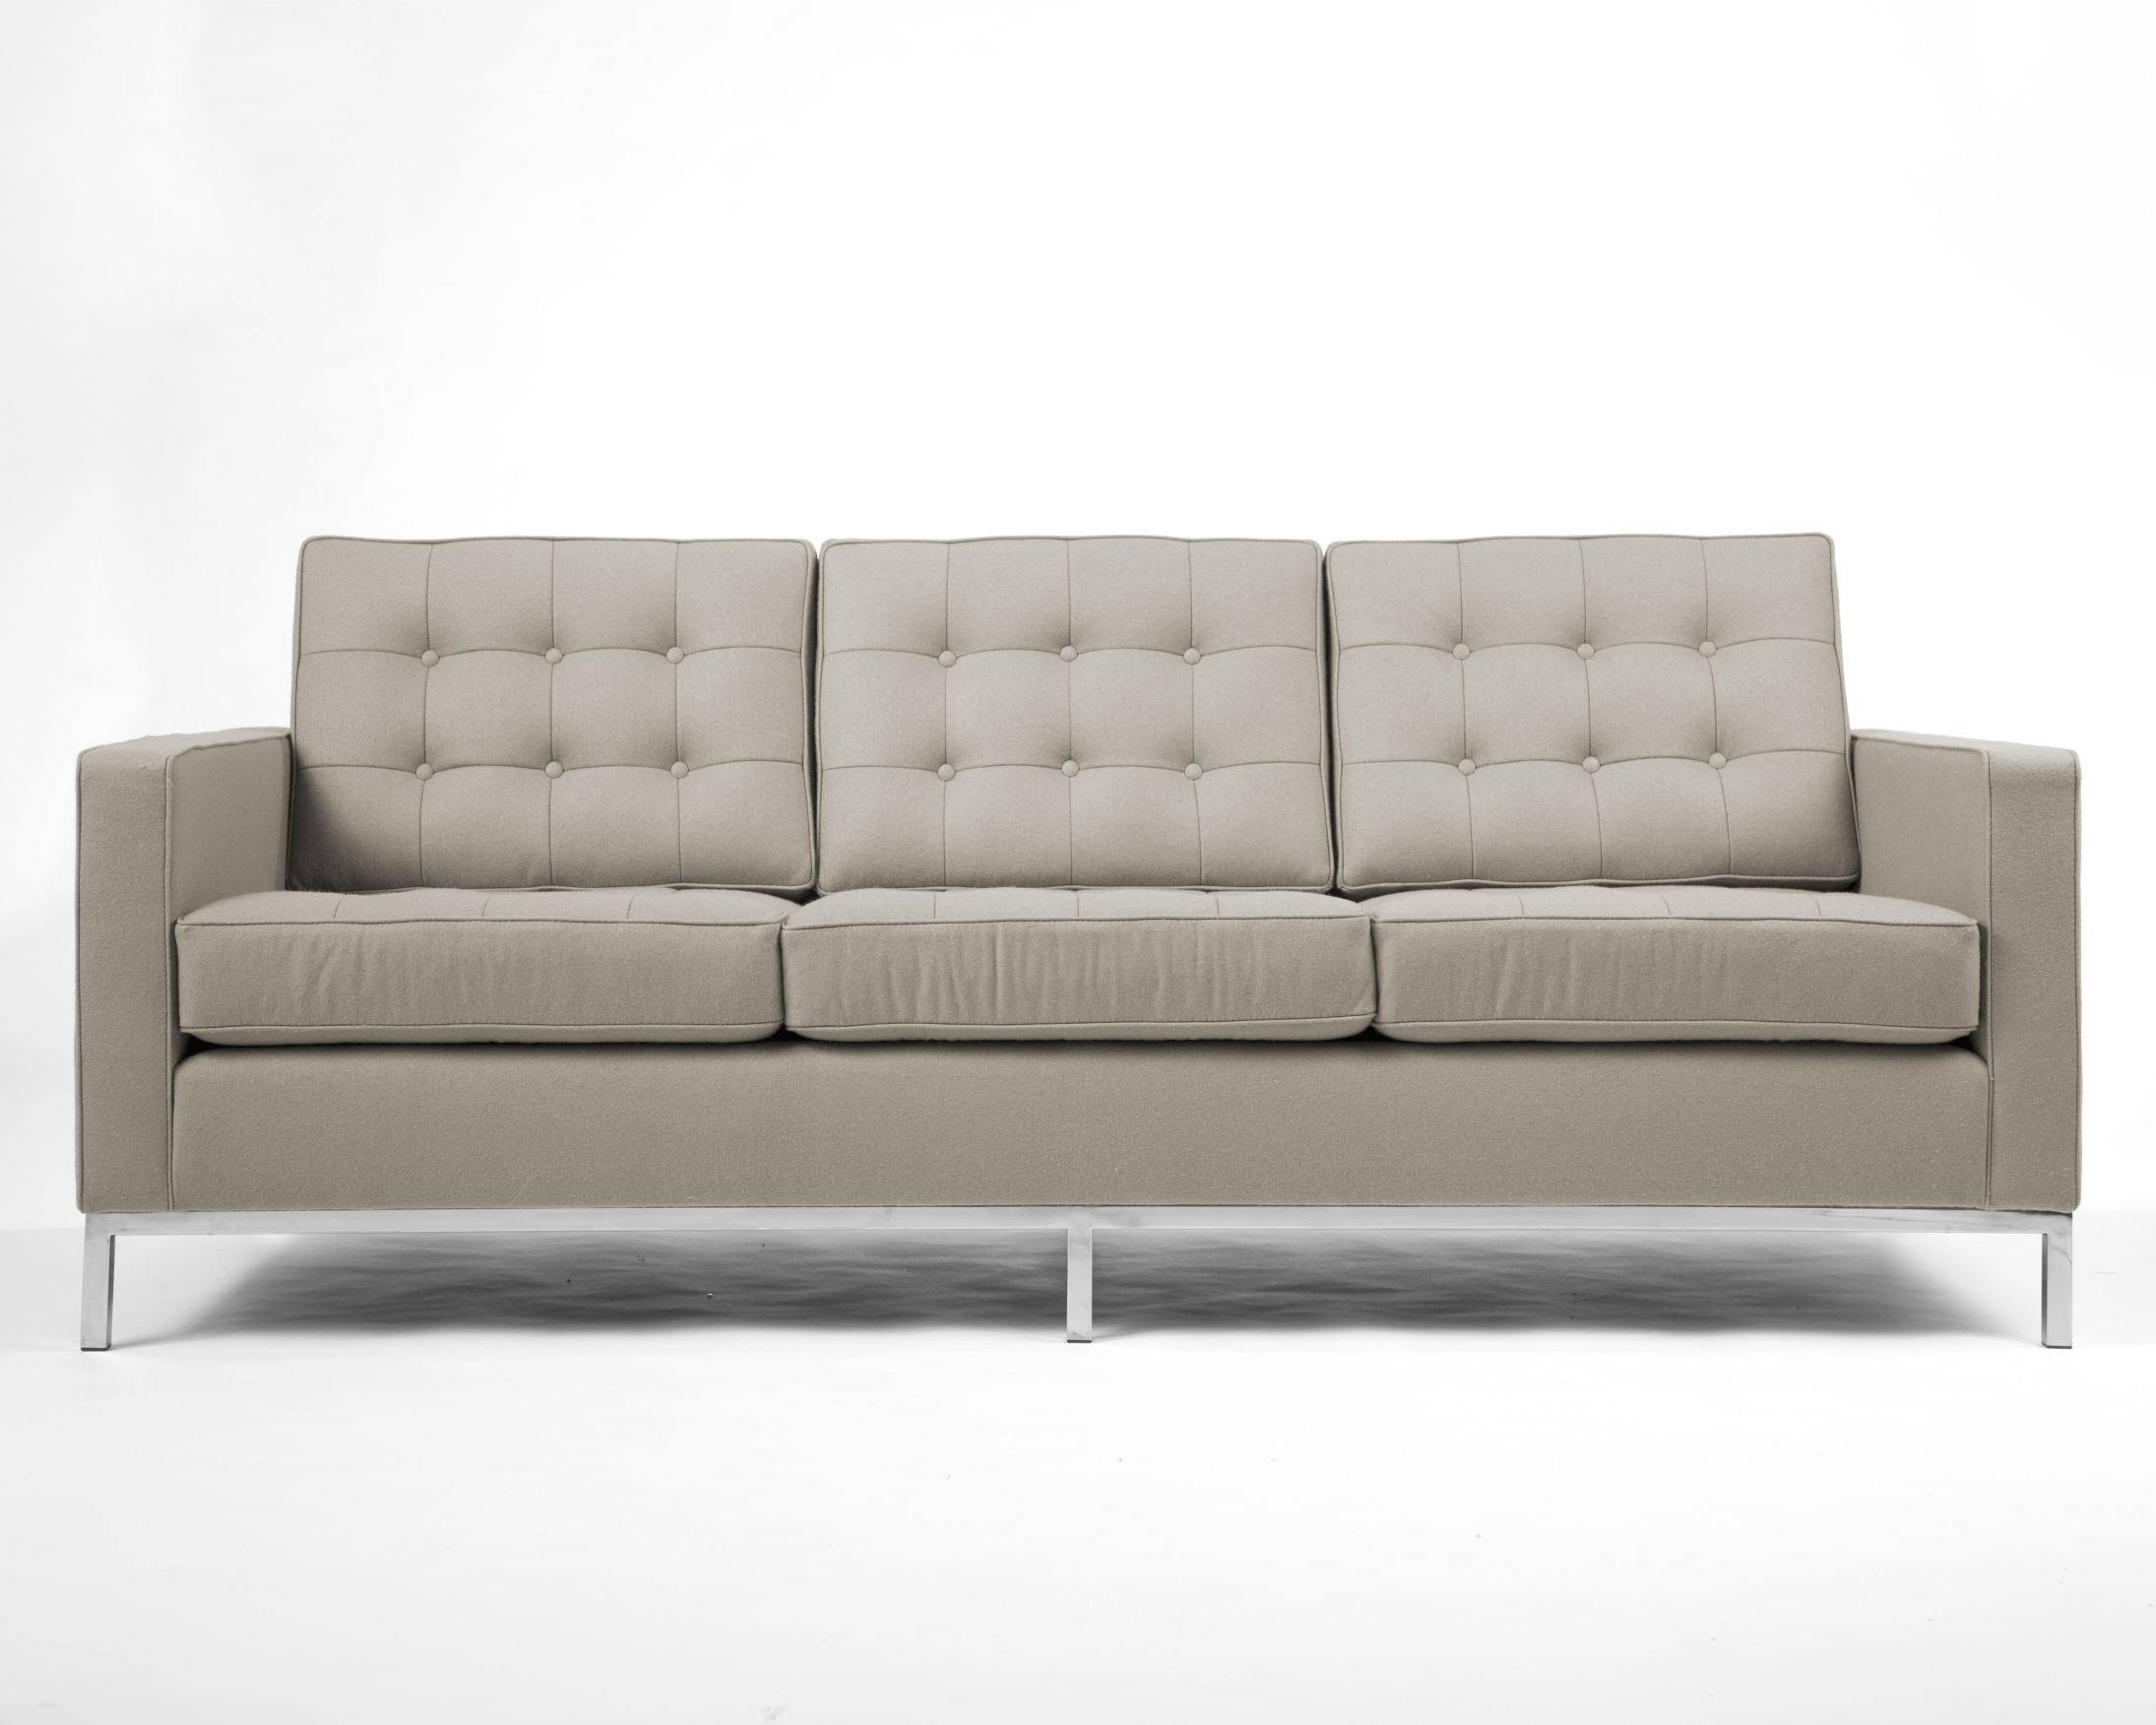 Florence Sofa | Reproduction | Mid Century Modern with regard to Florence Large Sofas (Image 12 of 30)